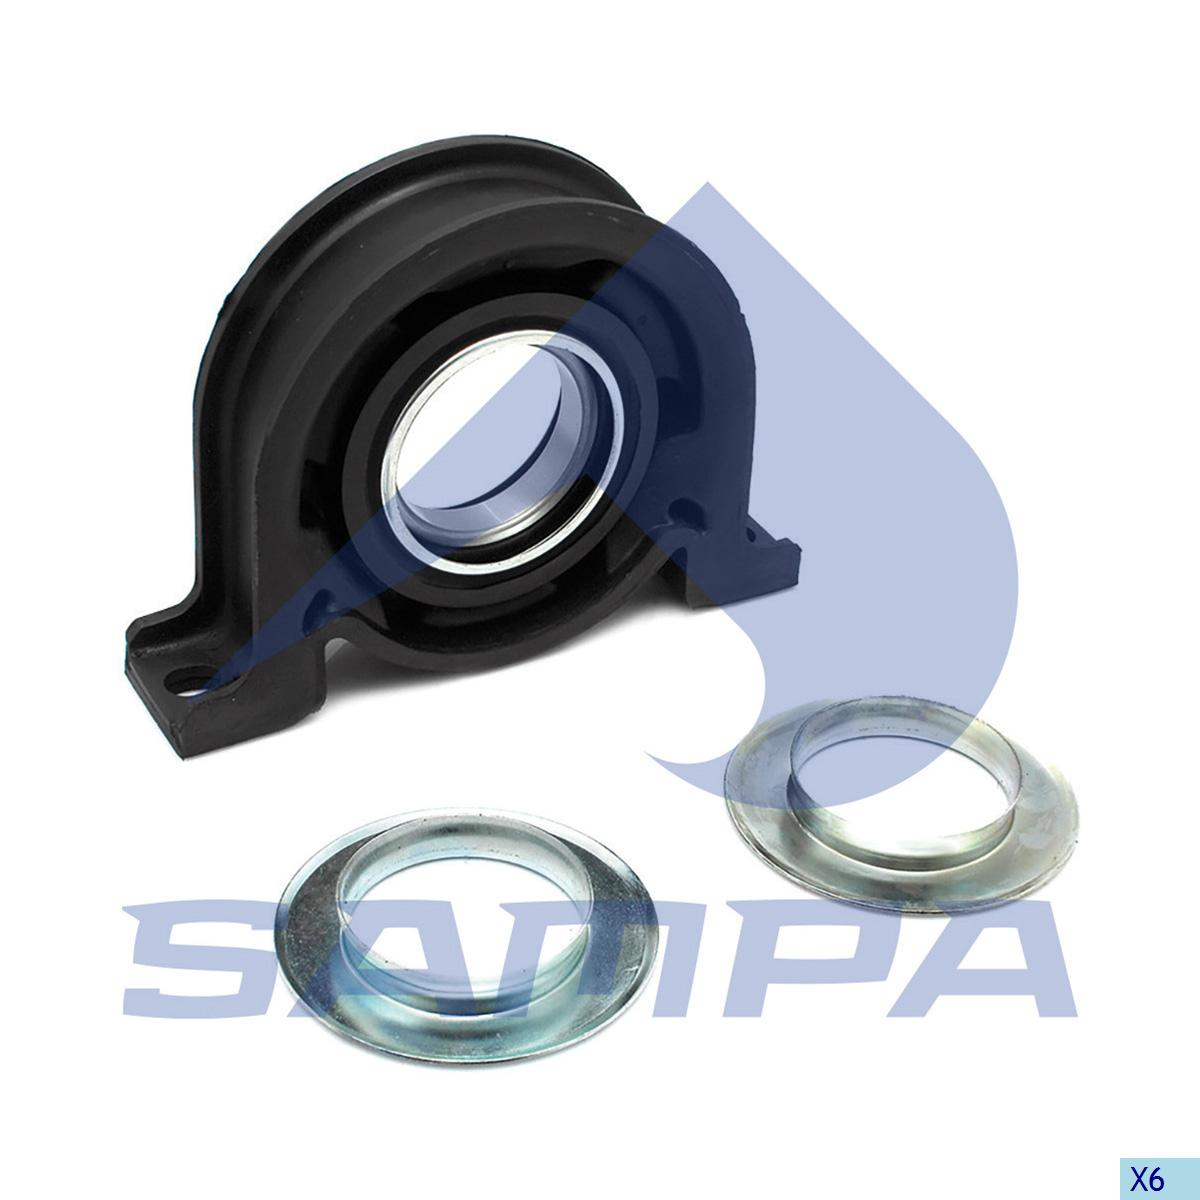 Propeller Shaft Bearing, Man, Propeller Shaft